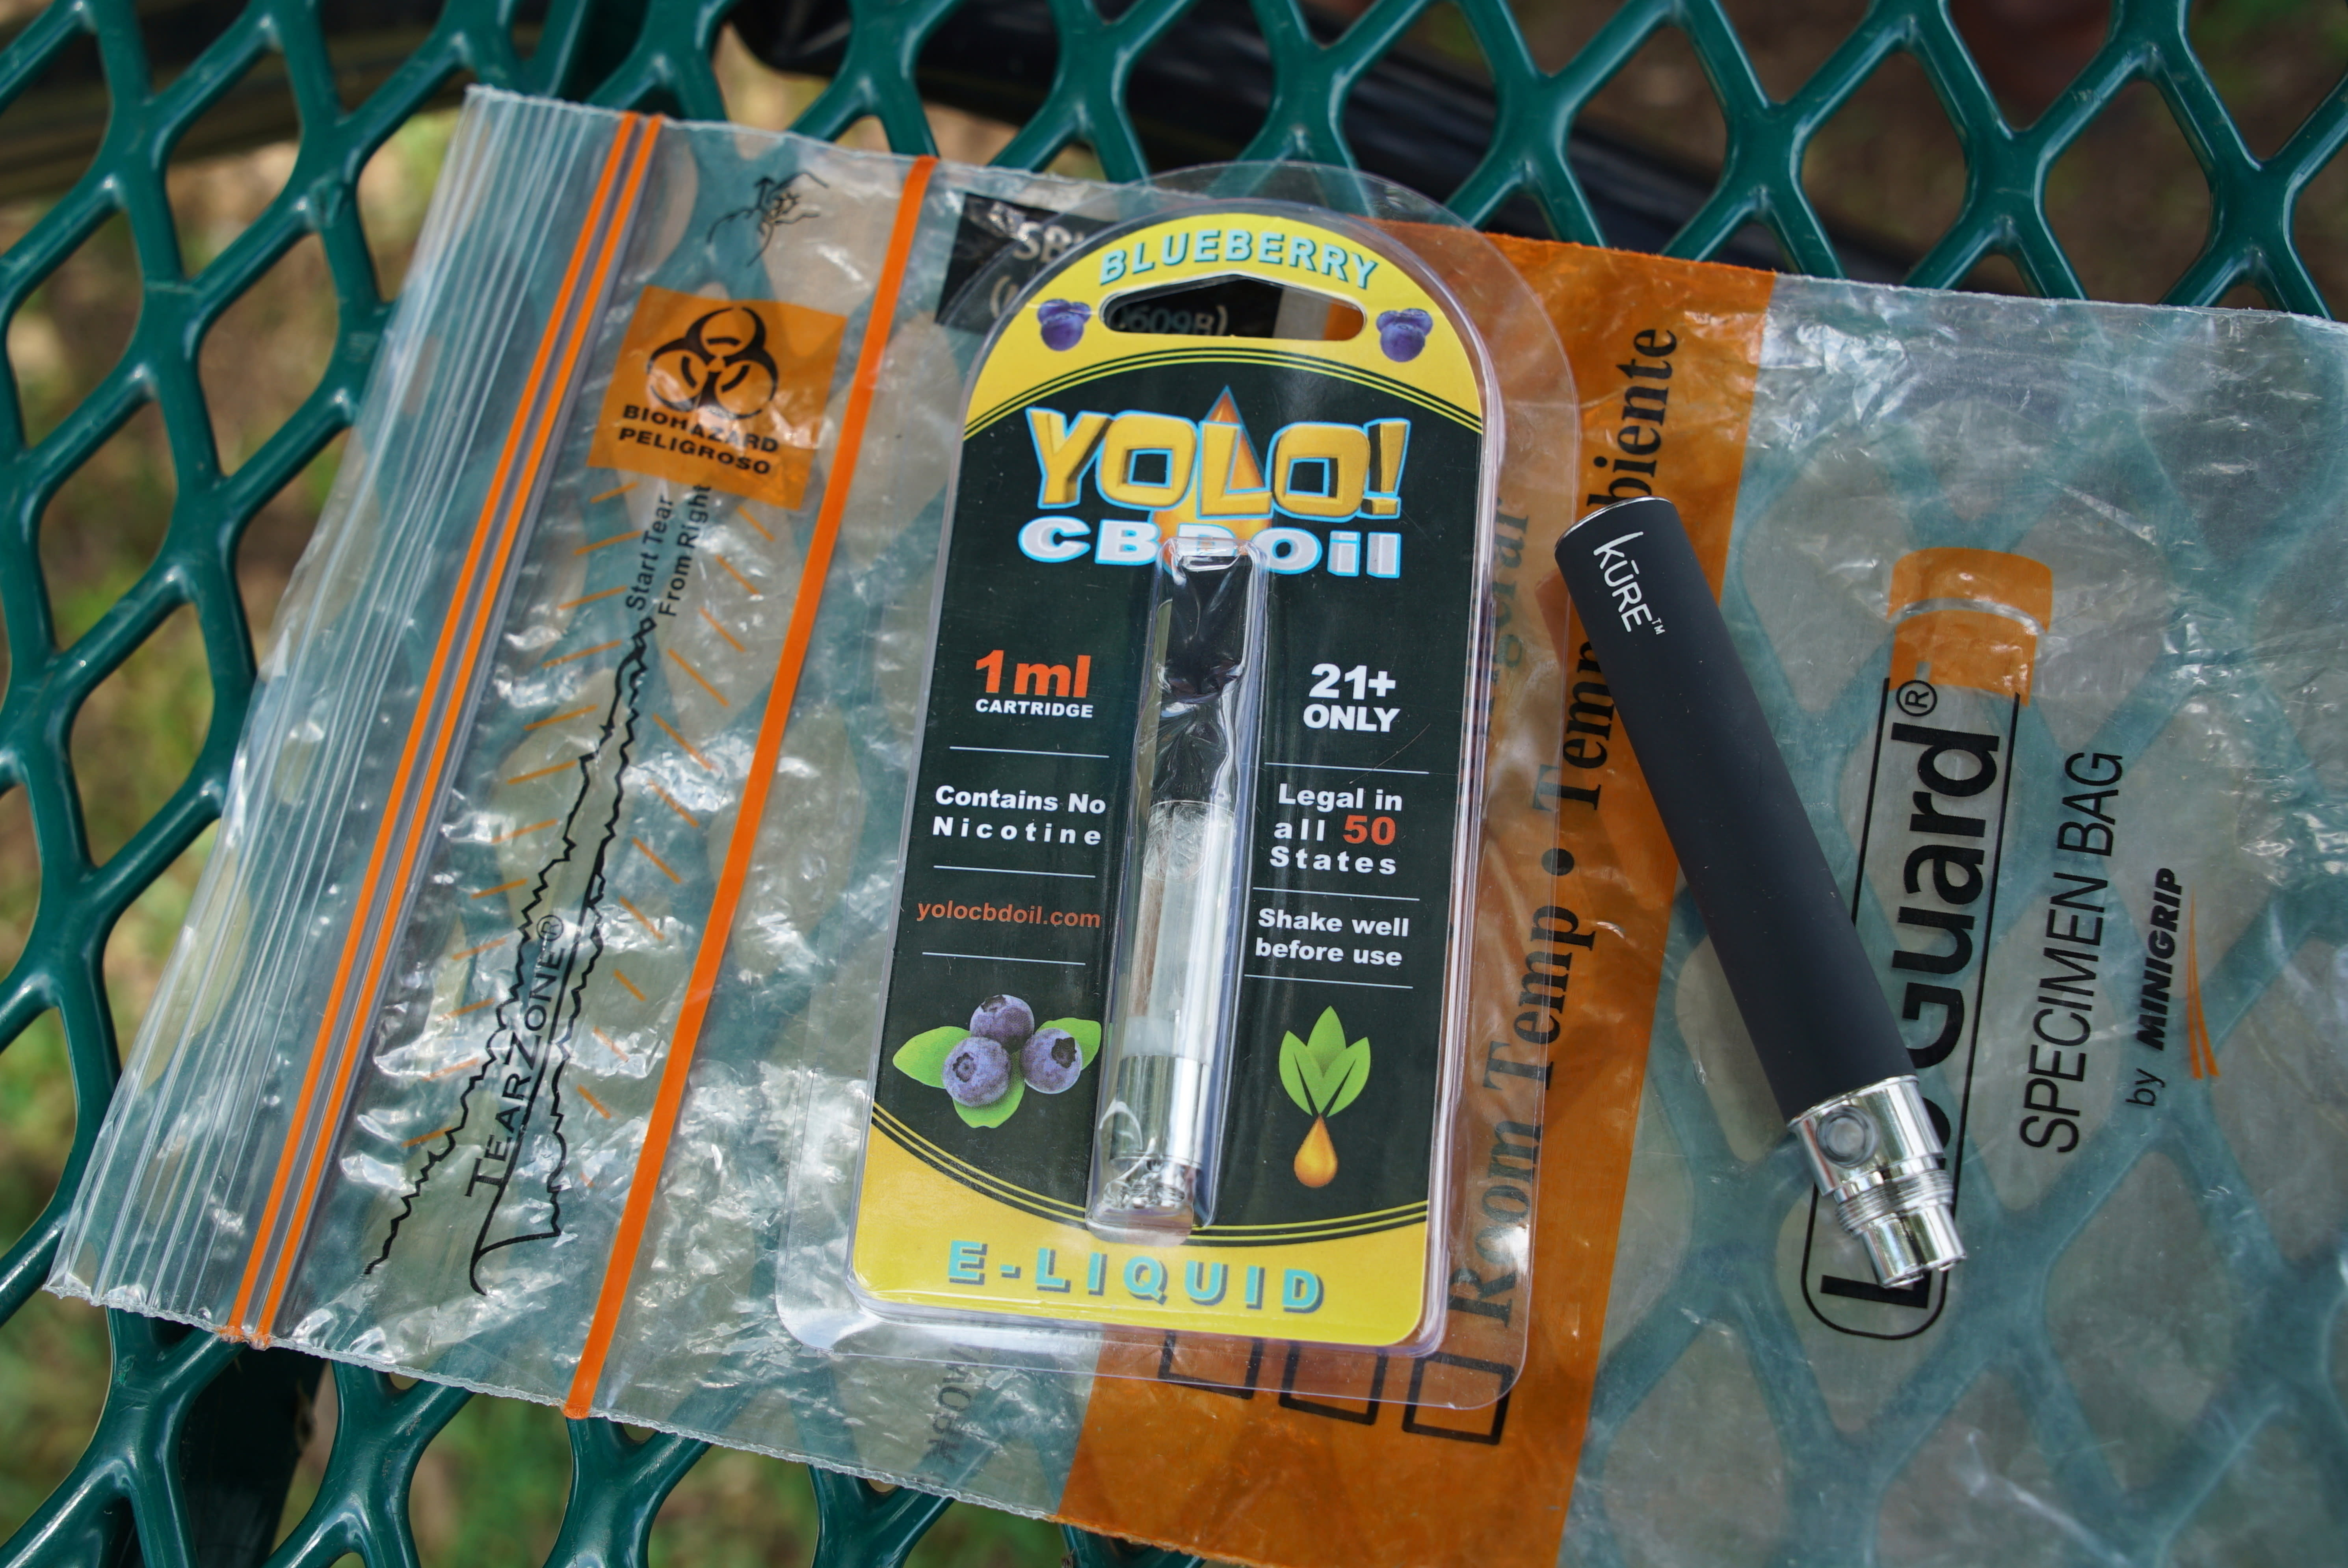 Illegal vapes traced to California woman who was CBD pioneer - Yahoo Lifestyle